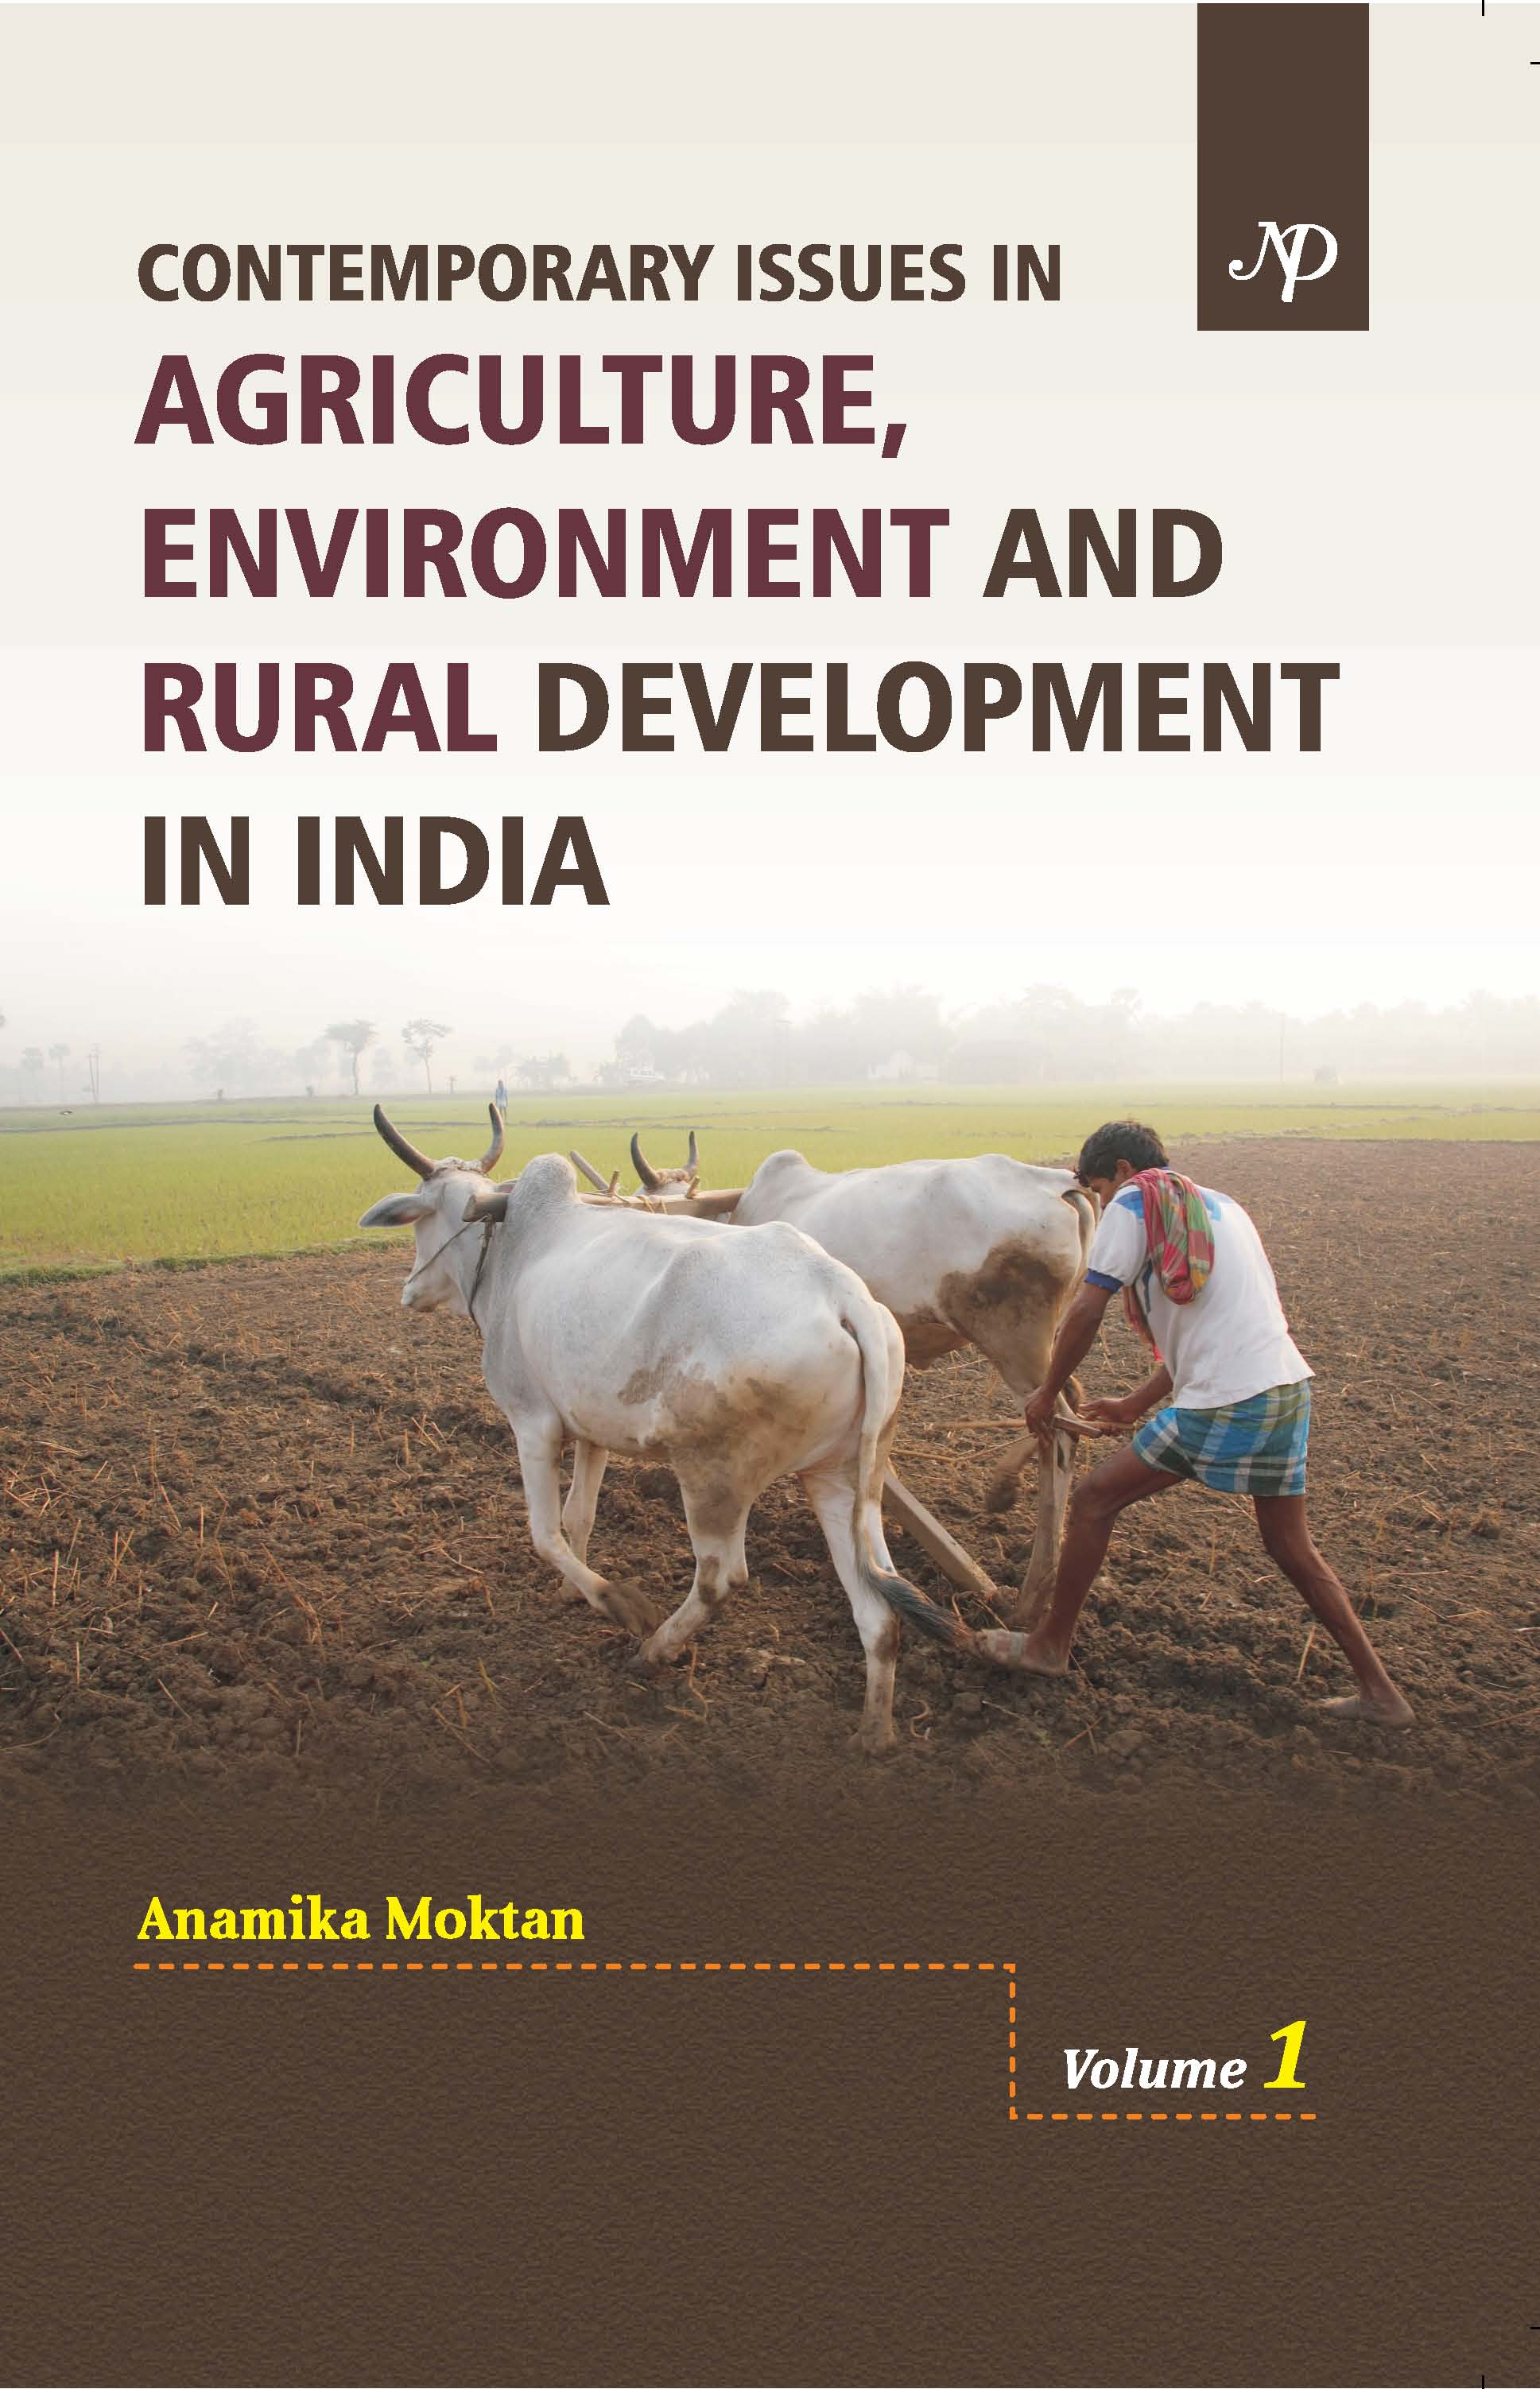 Contemporary Issues In Agriculture, Environment and Rural Development In india.jpg